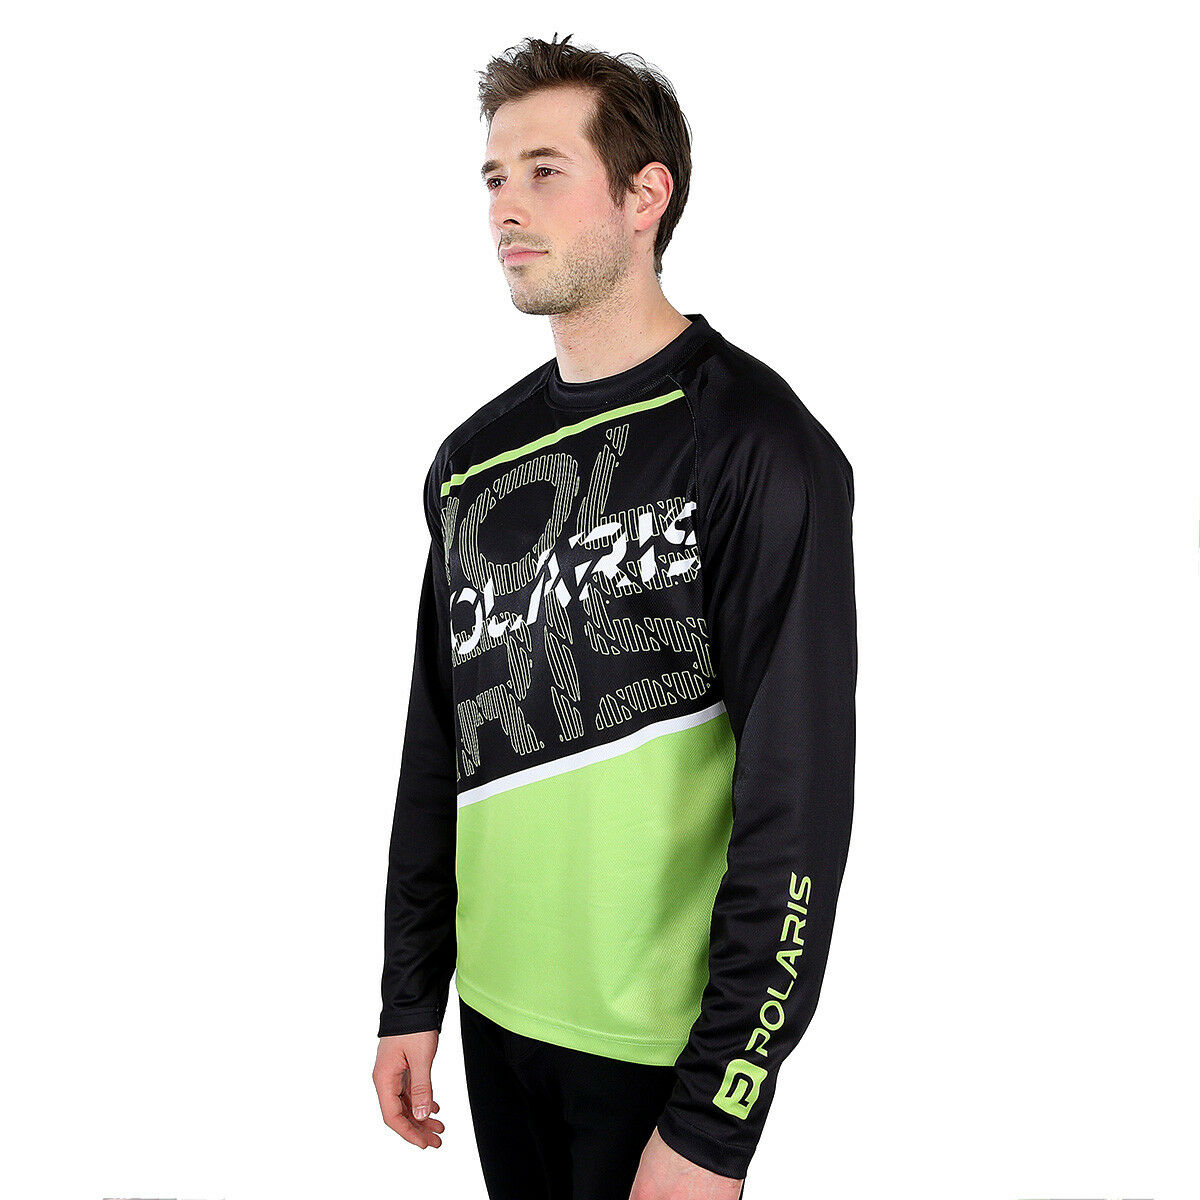 NEW POLARIS AM DEFY BIKE MOUNTAIN BIKE DEFY MTB LONG SLEEVE RELAXED FIT JERSEY 585cce